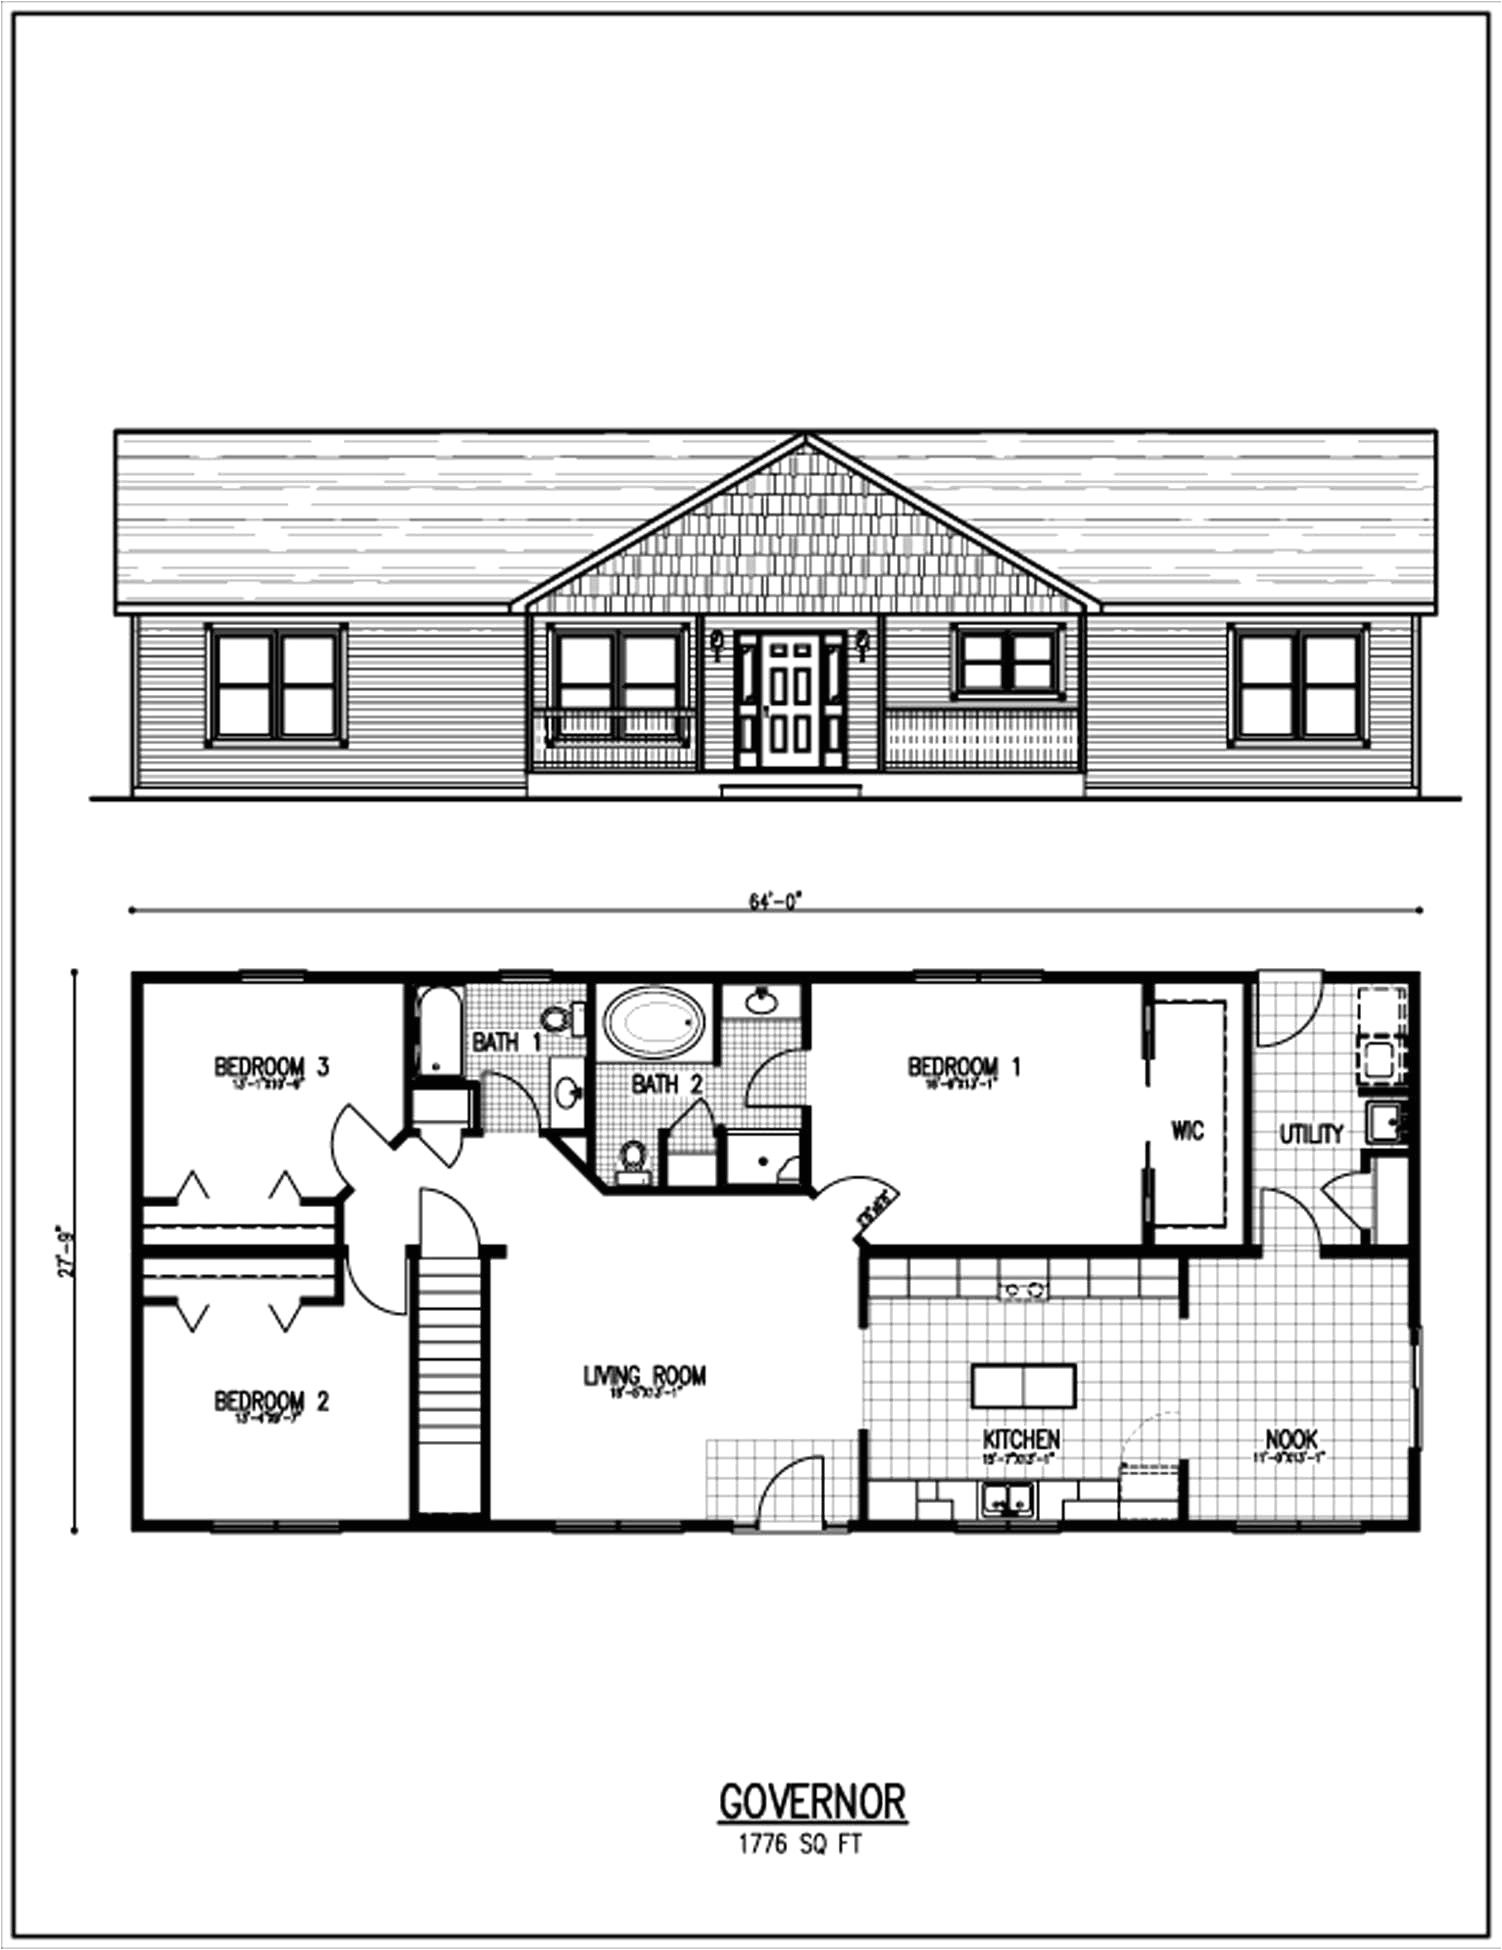 House Plans Under 150k To Build Check More At Https